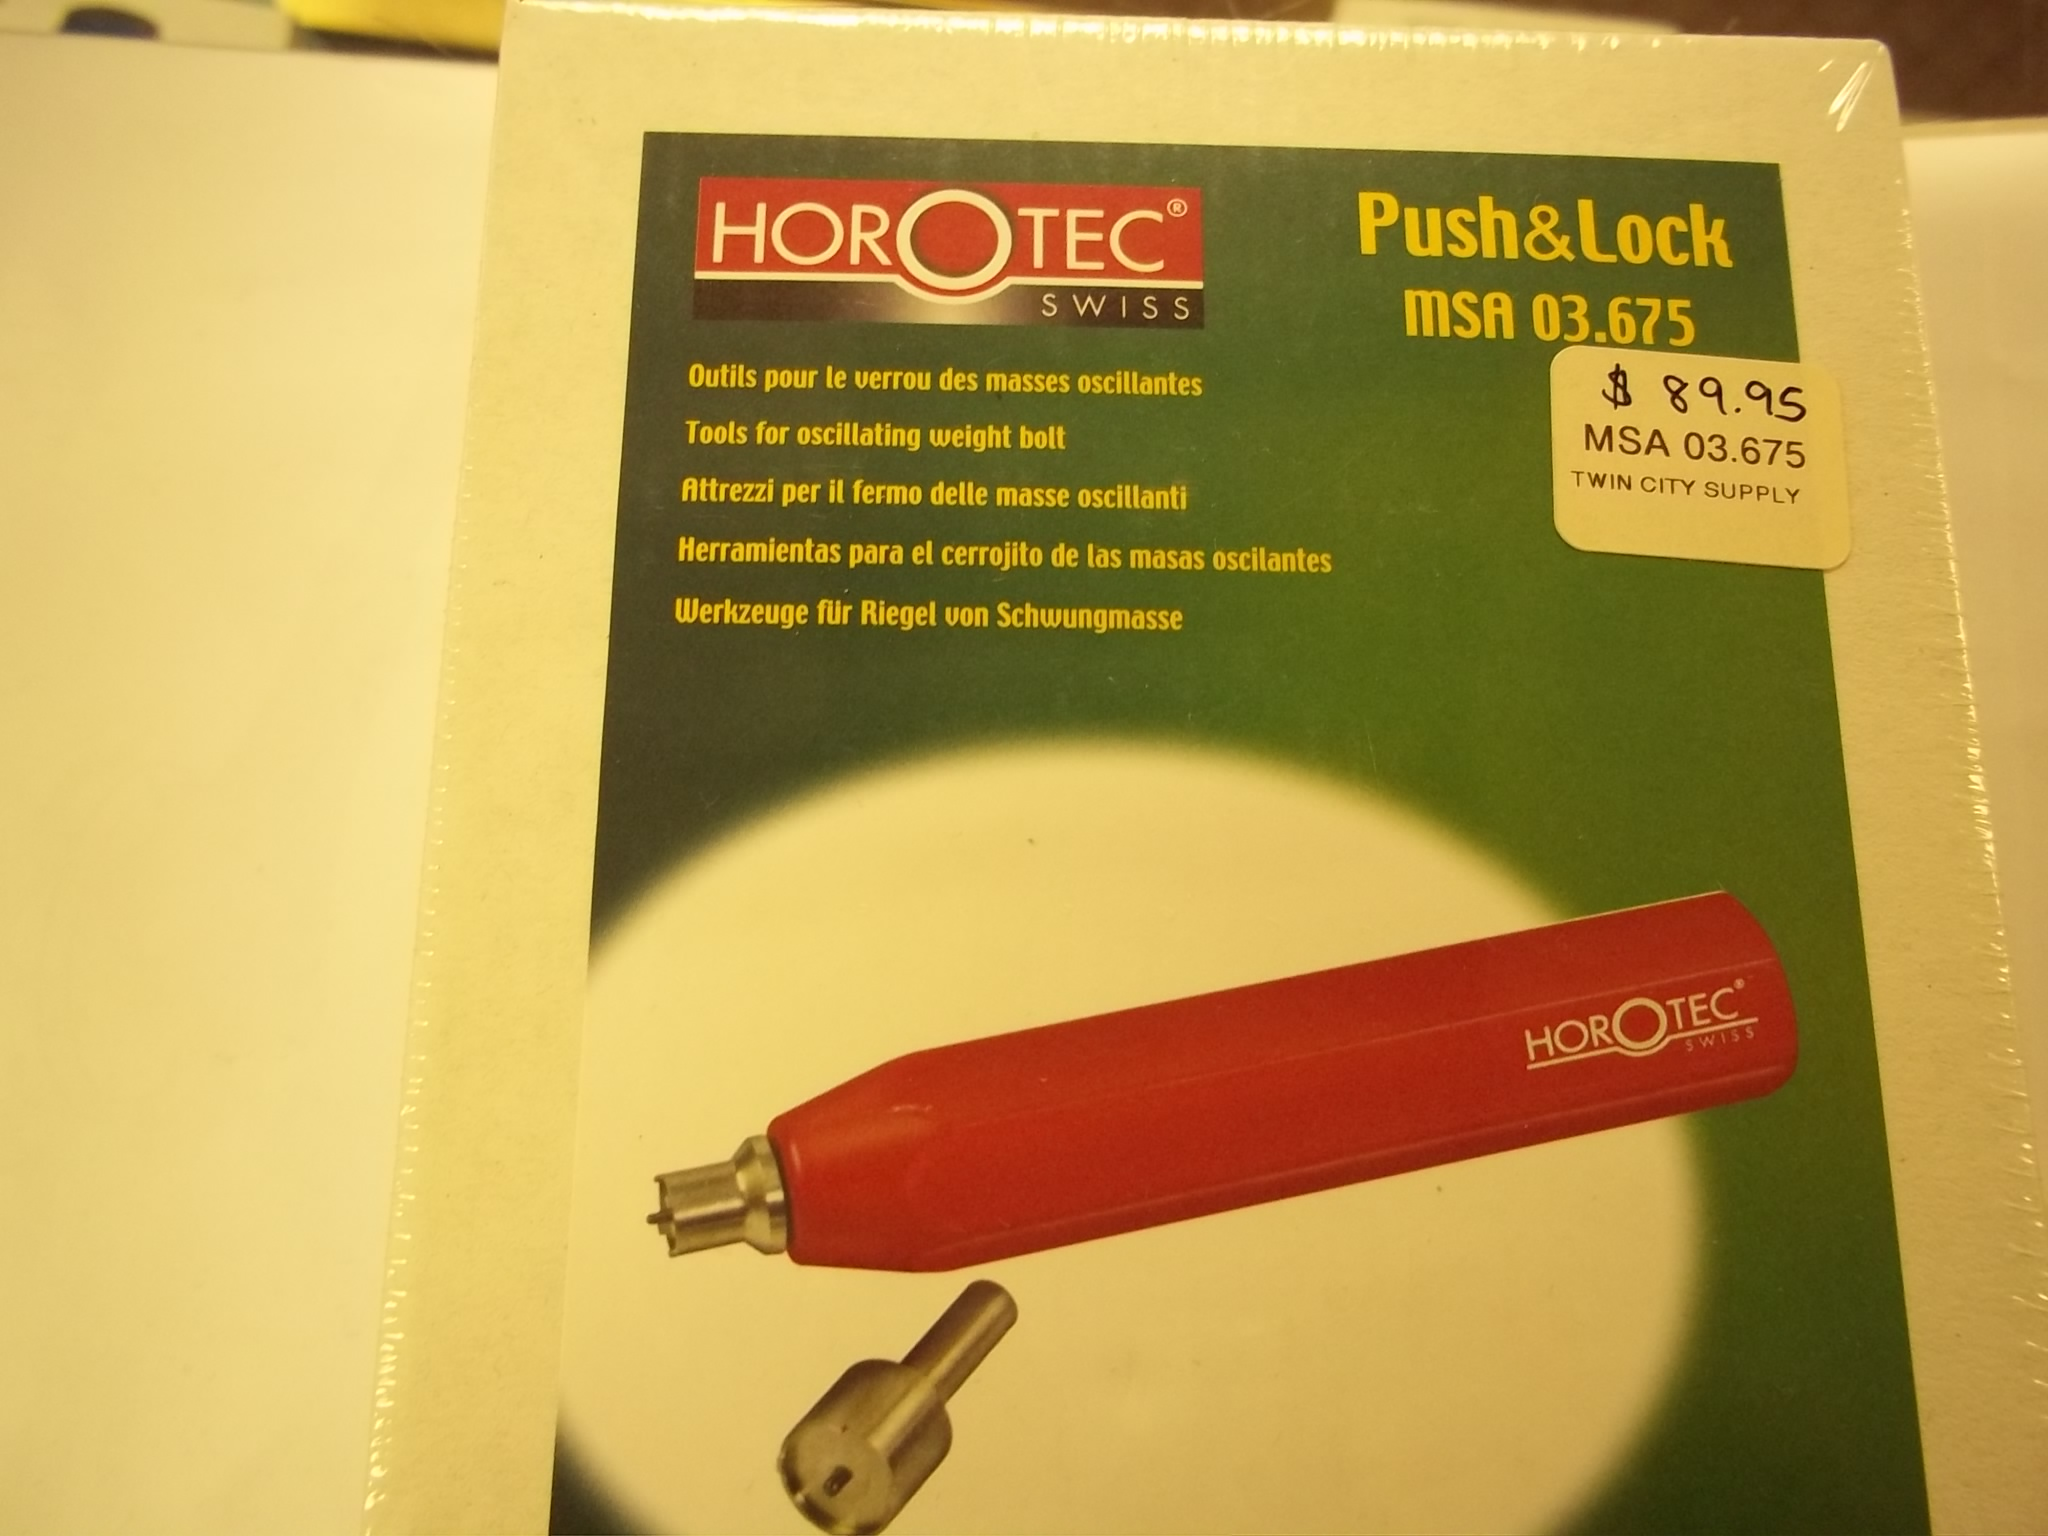 MSA03.675 Horotec Push & Lock Tool--for Oscillating Weight Bolt